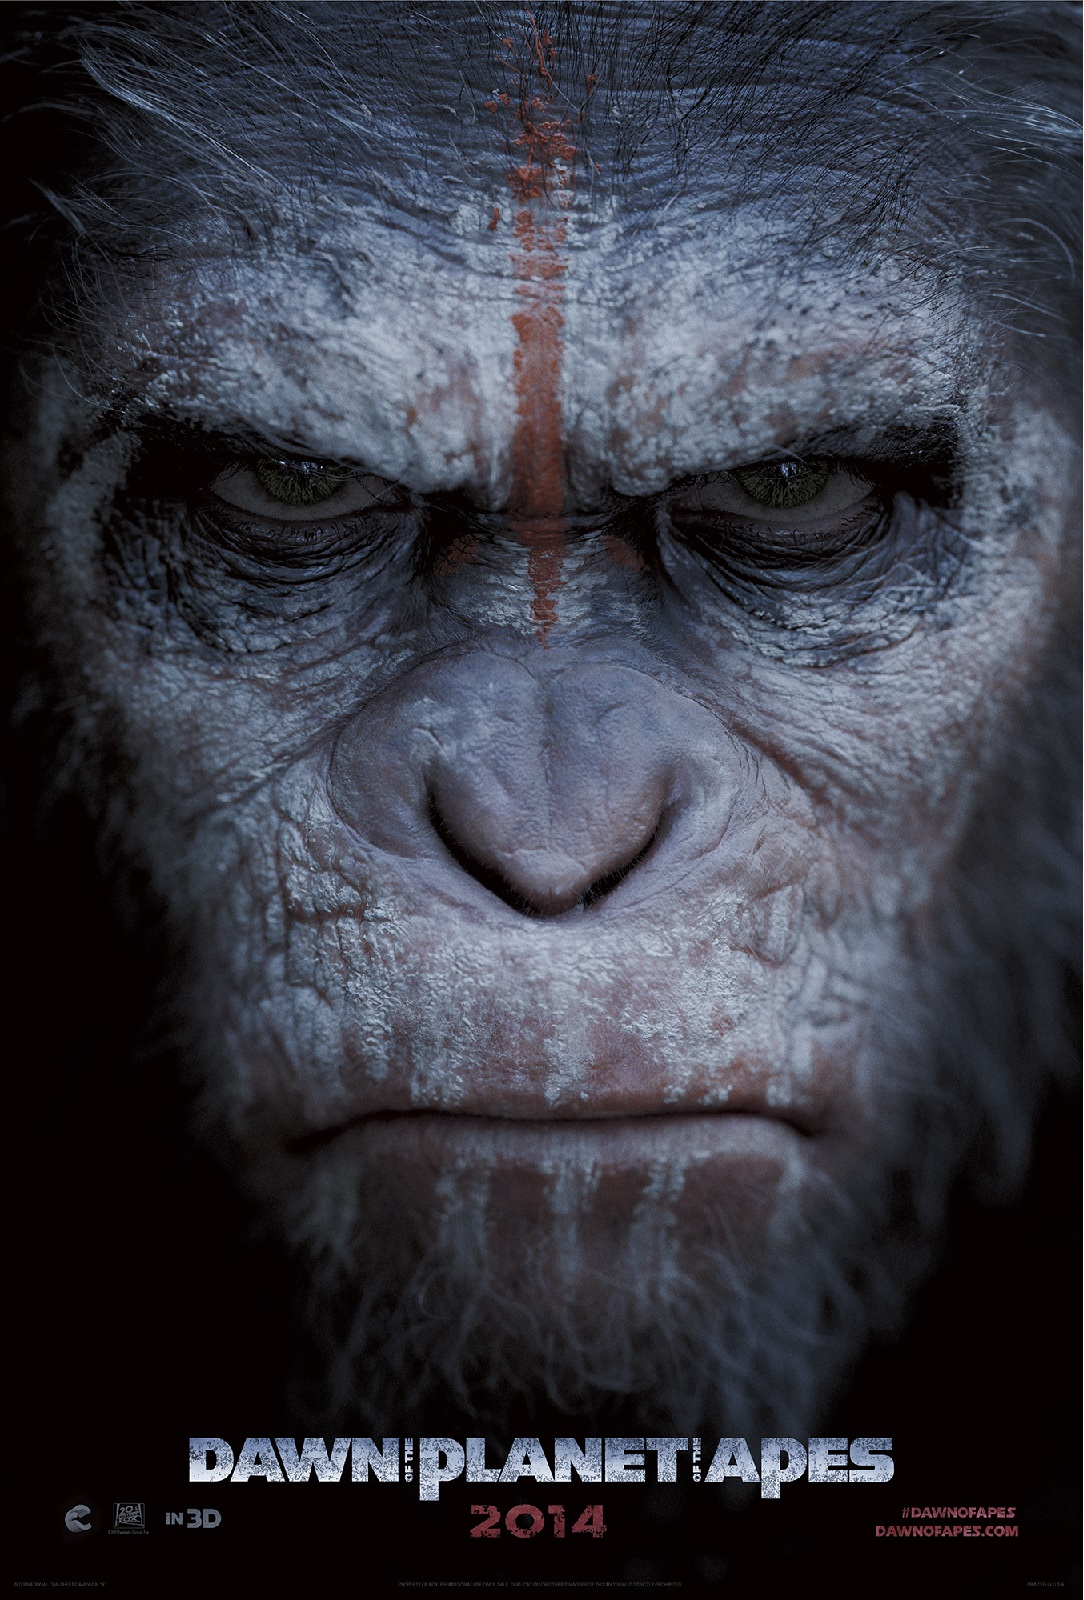 Dawn of the Planet of the Apes poster1 Three Videos Show What Happened to the World Before Dawn of the Planet of the Apes